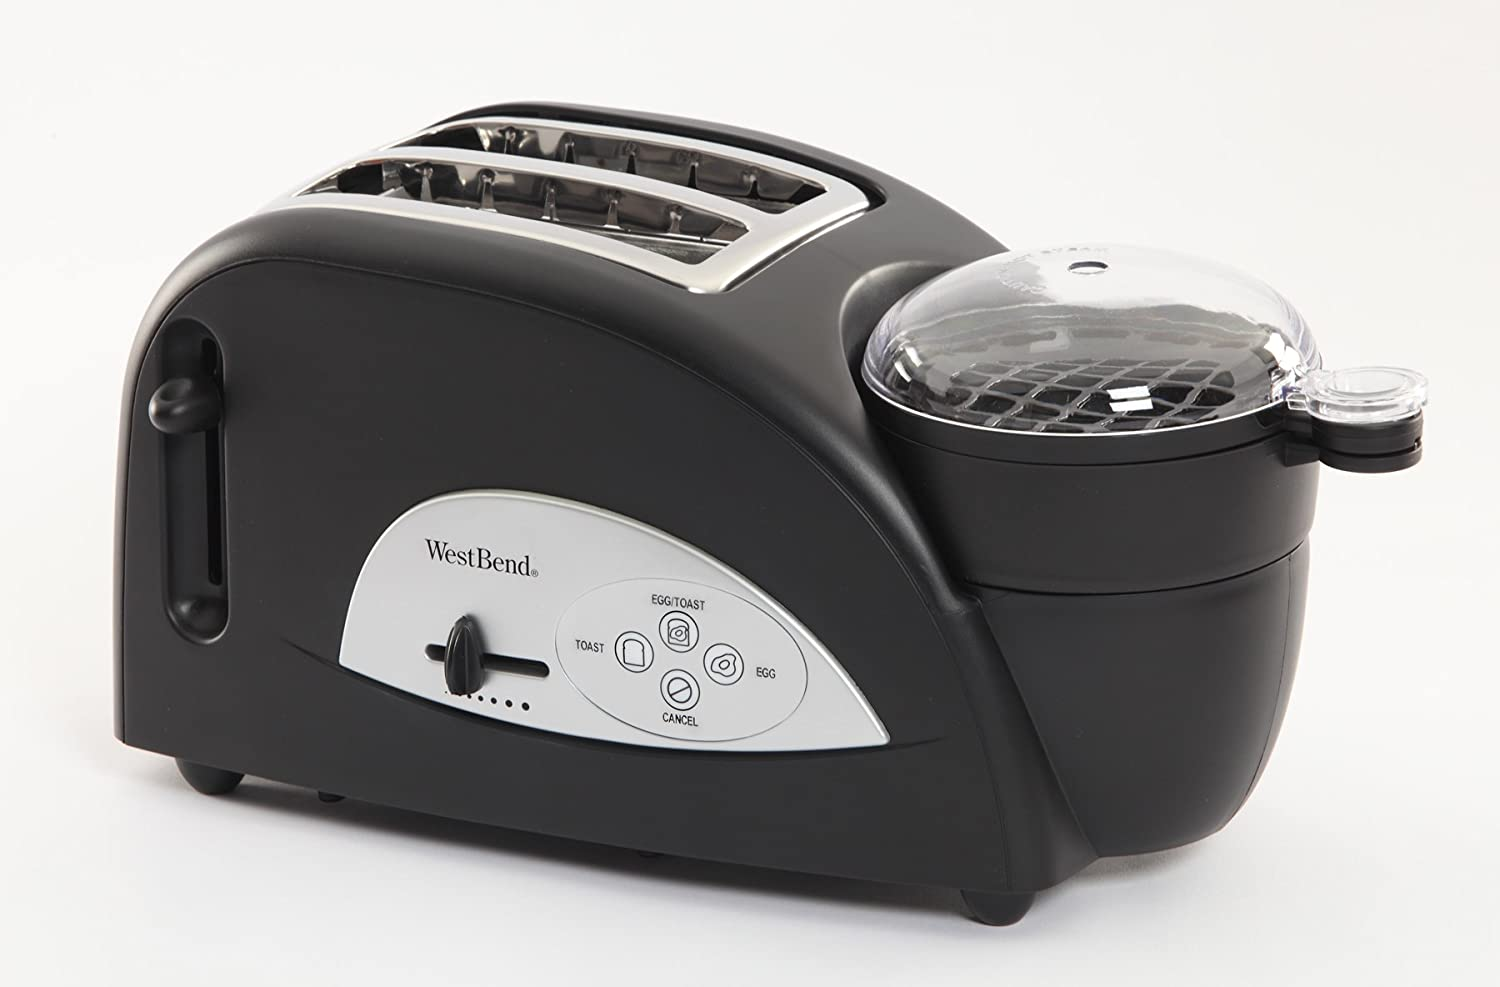 Amazon.com: West Bend TEM500W Egg and Muffin Toaster: Kitchen & Dining